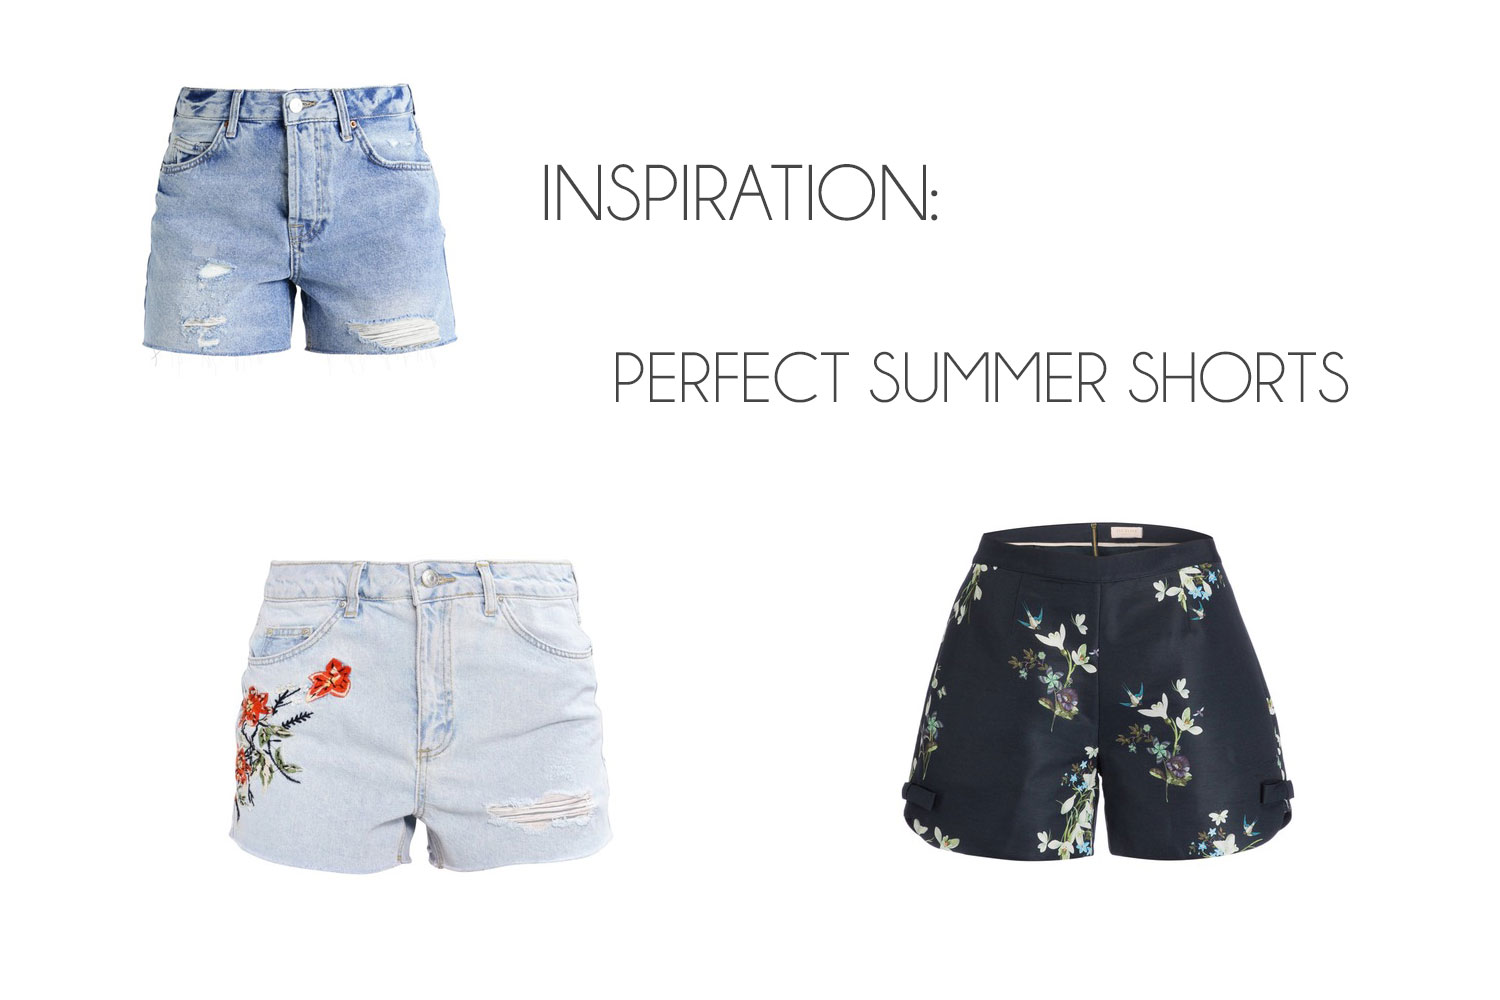 Leven gebeurt offline! - Perfect Summer Shorts